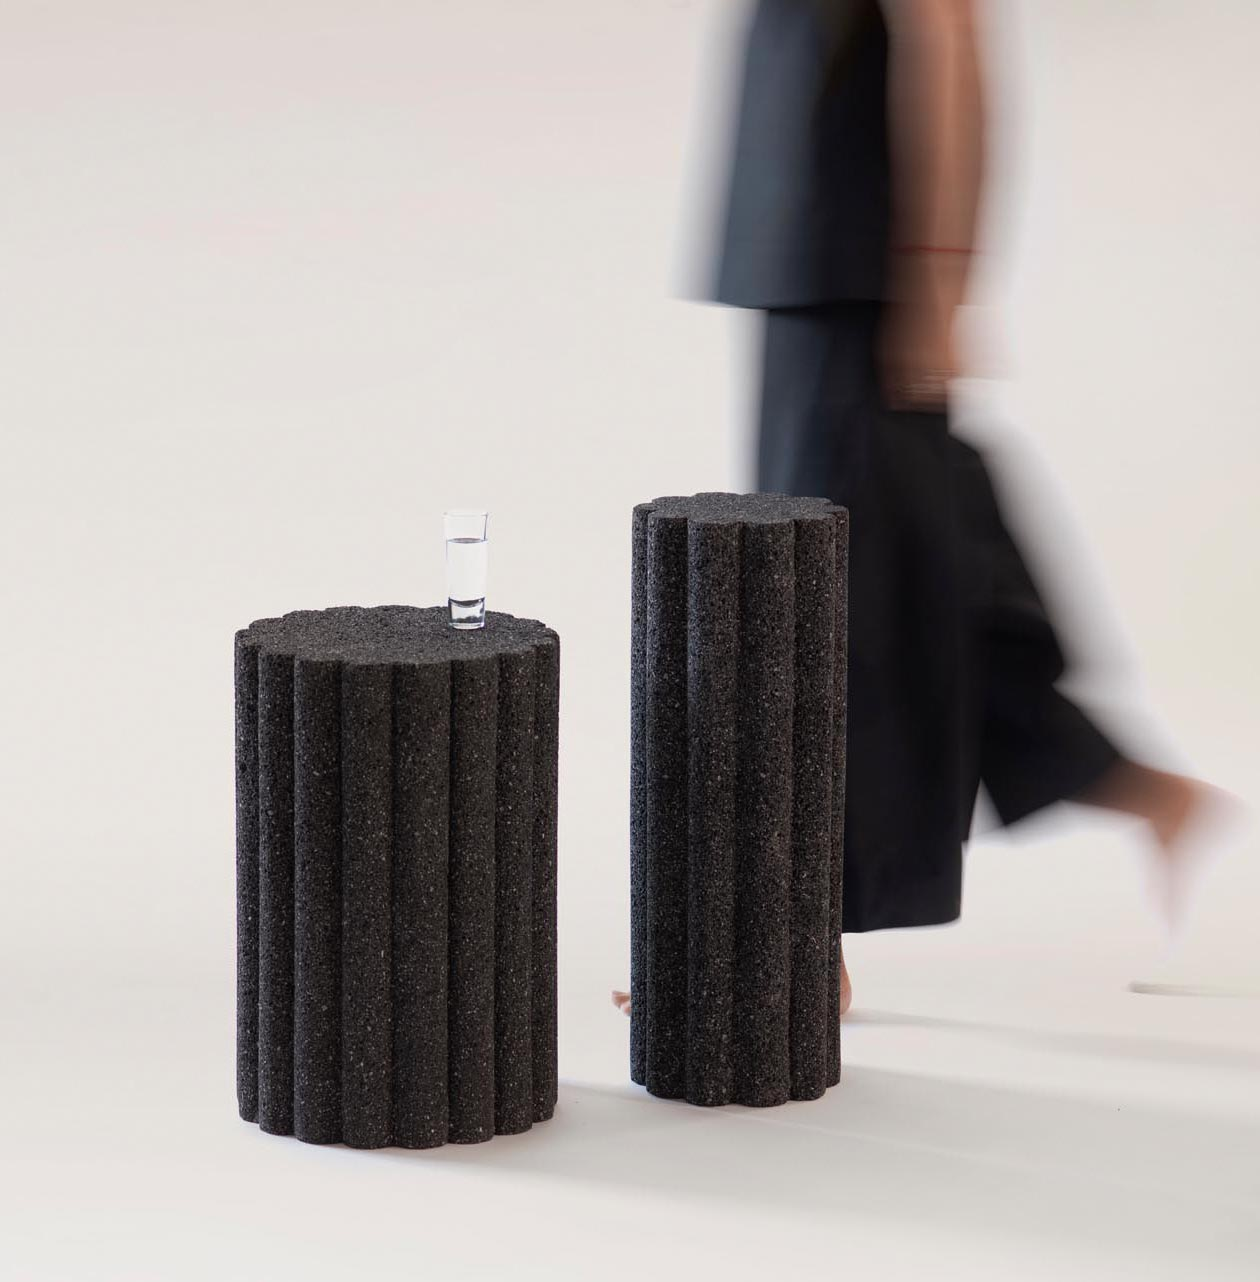 A collection of modern black side tables and stools made from volcanic rock.